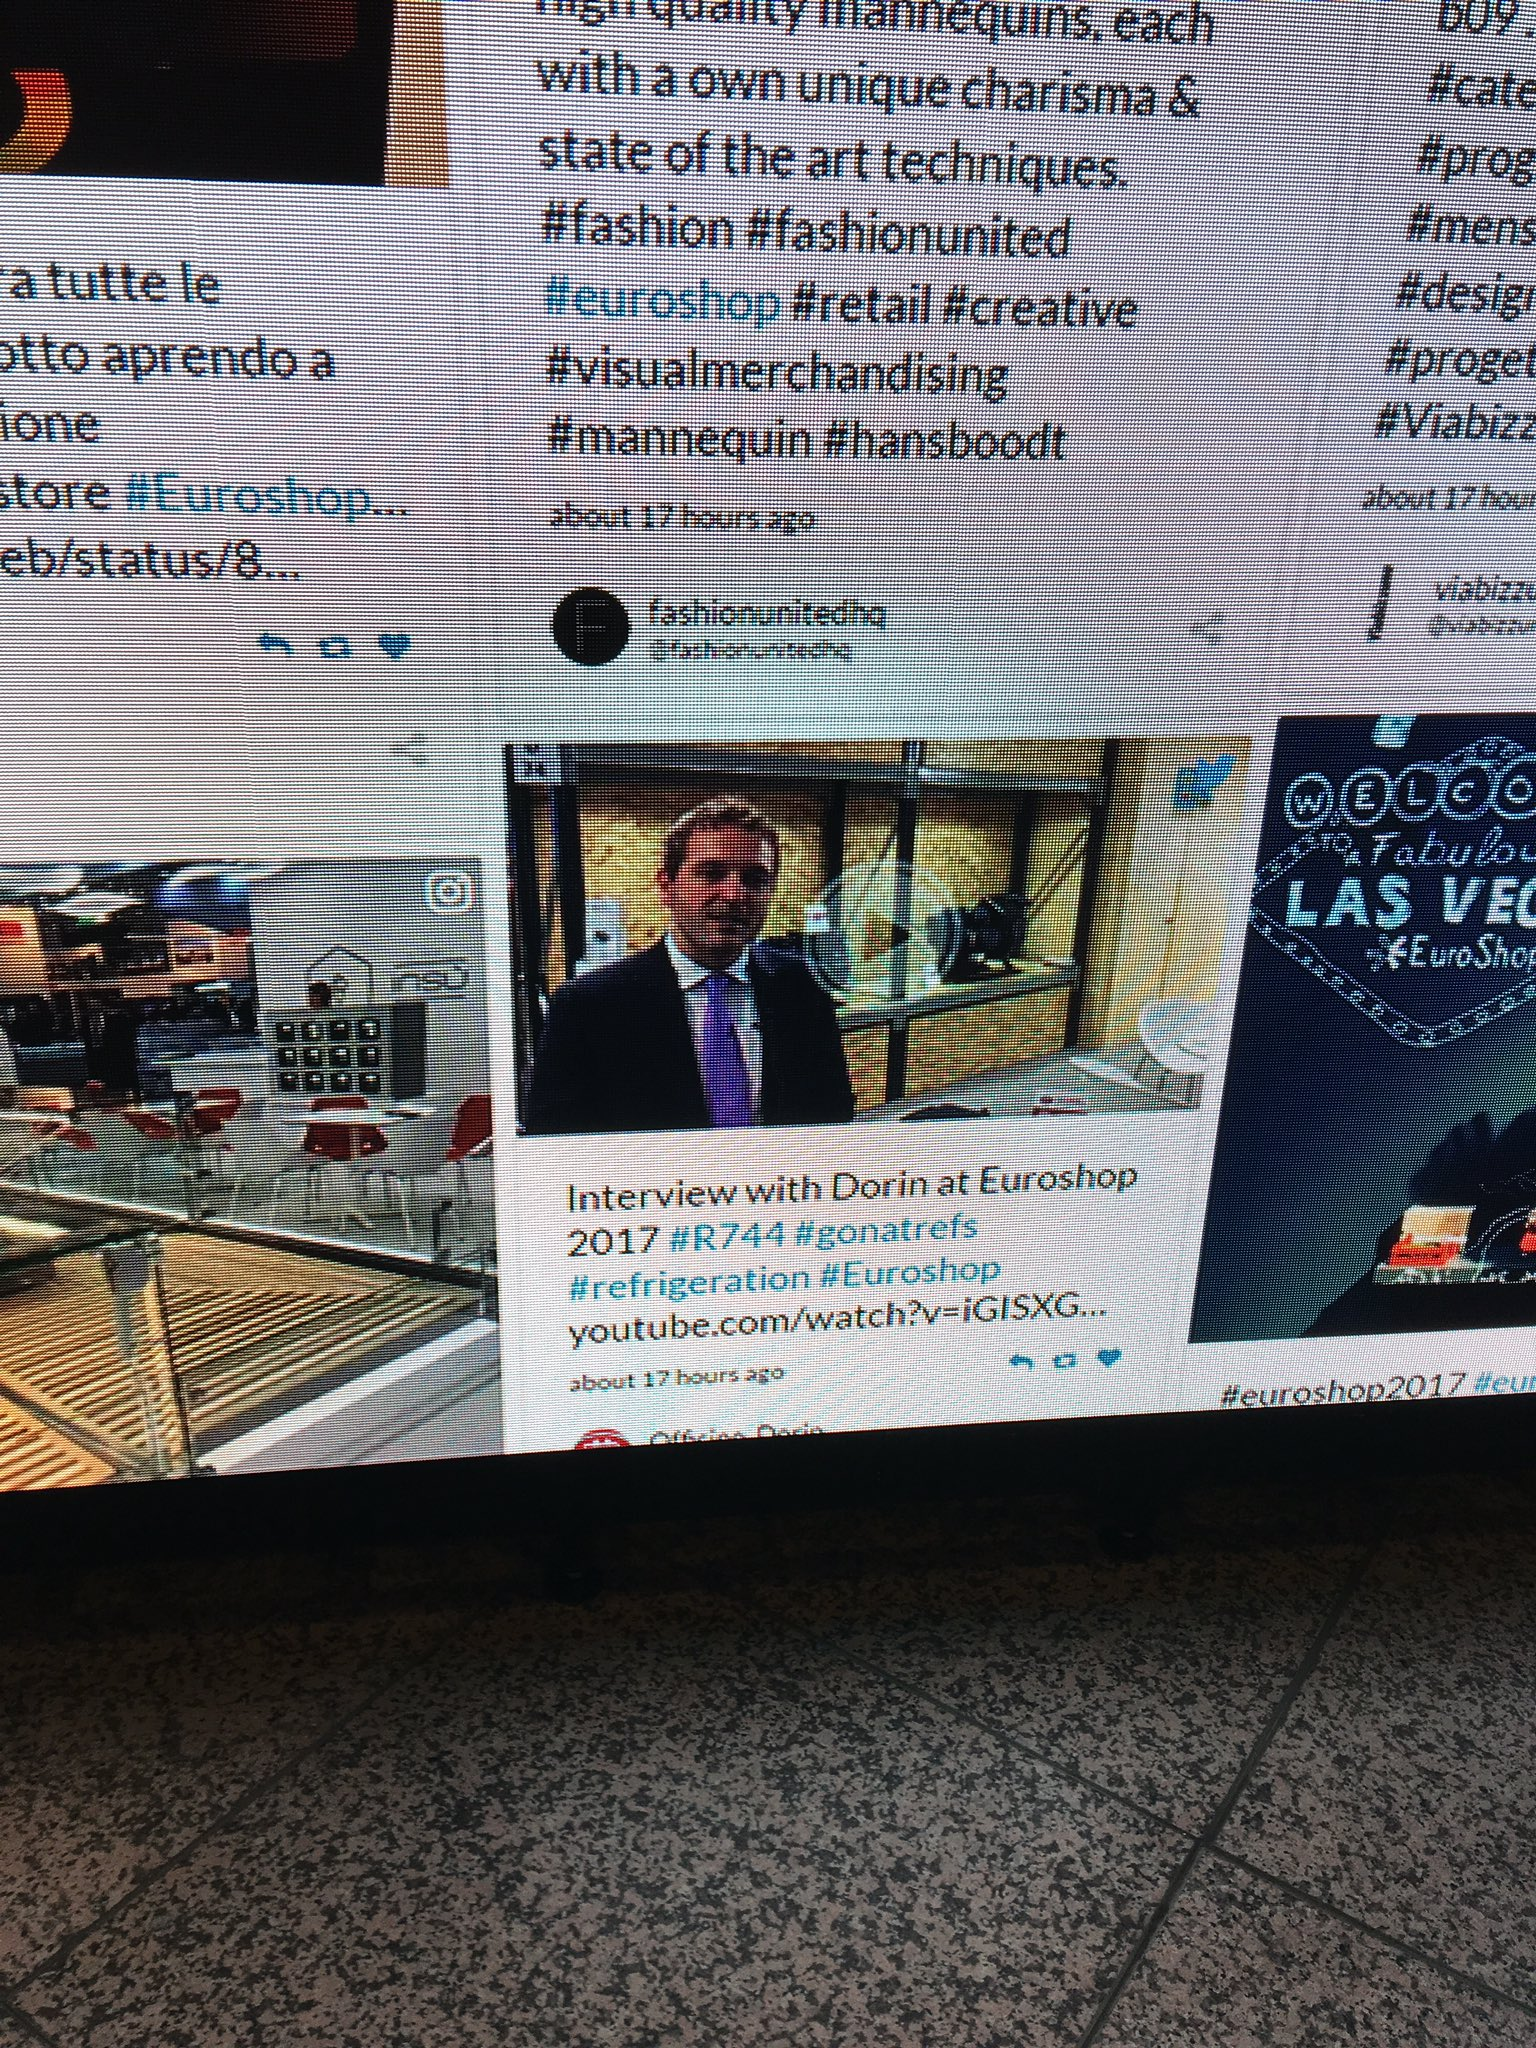 https://t.co/IEEUUZEVEw interview with Dorin going viral on official Twitter wall at #euroshop2017 https://t.co/Y3lYdERhdG